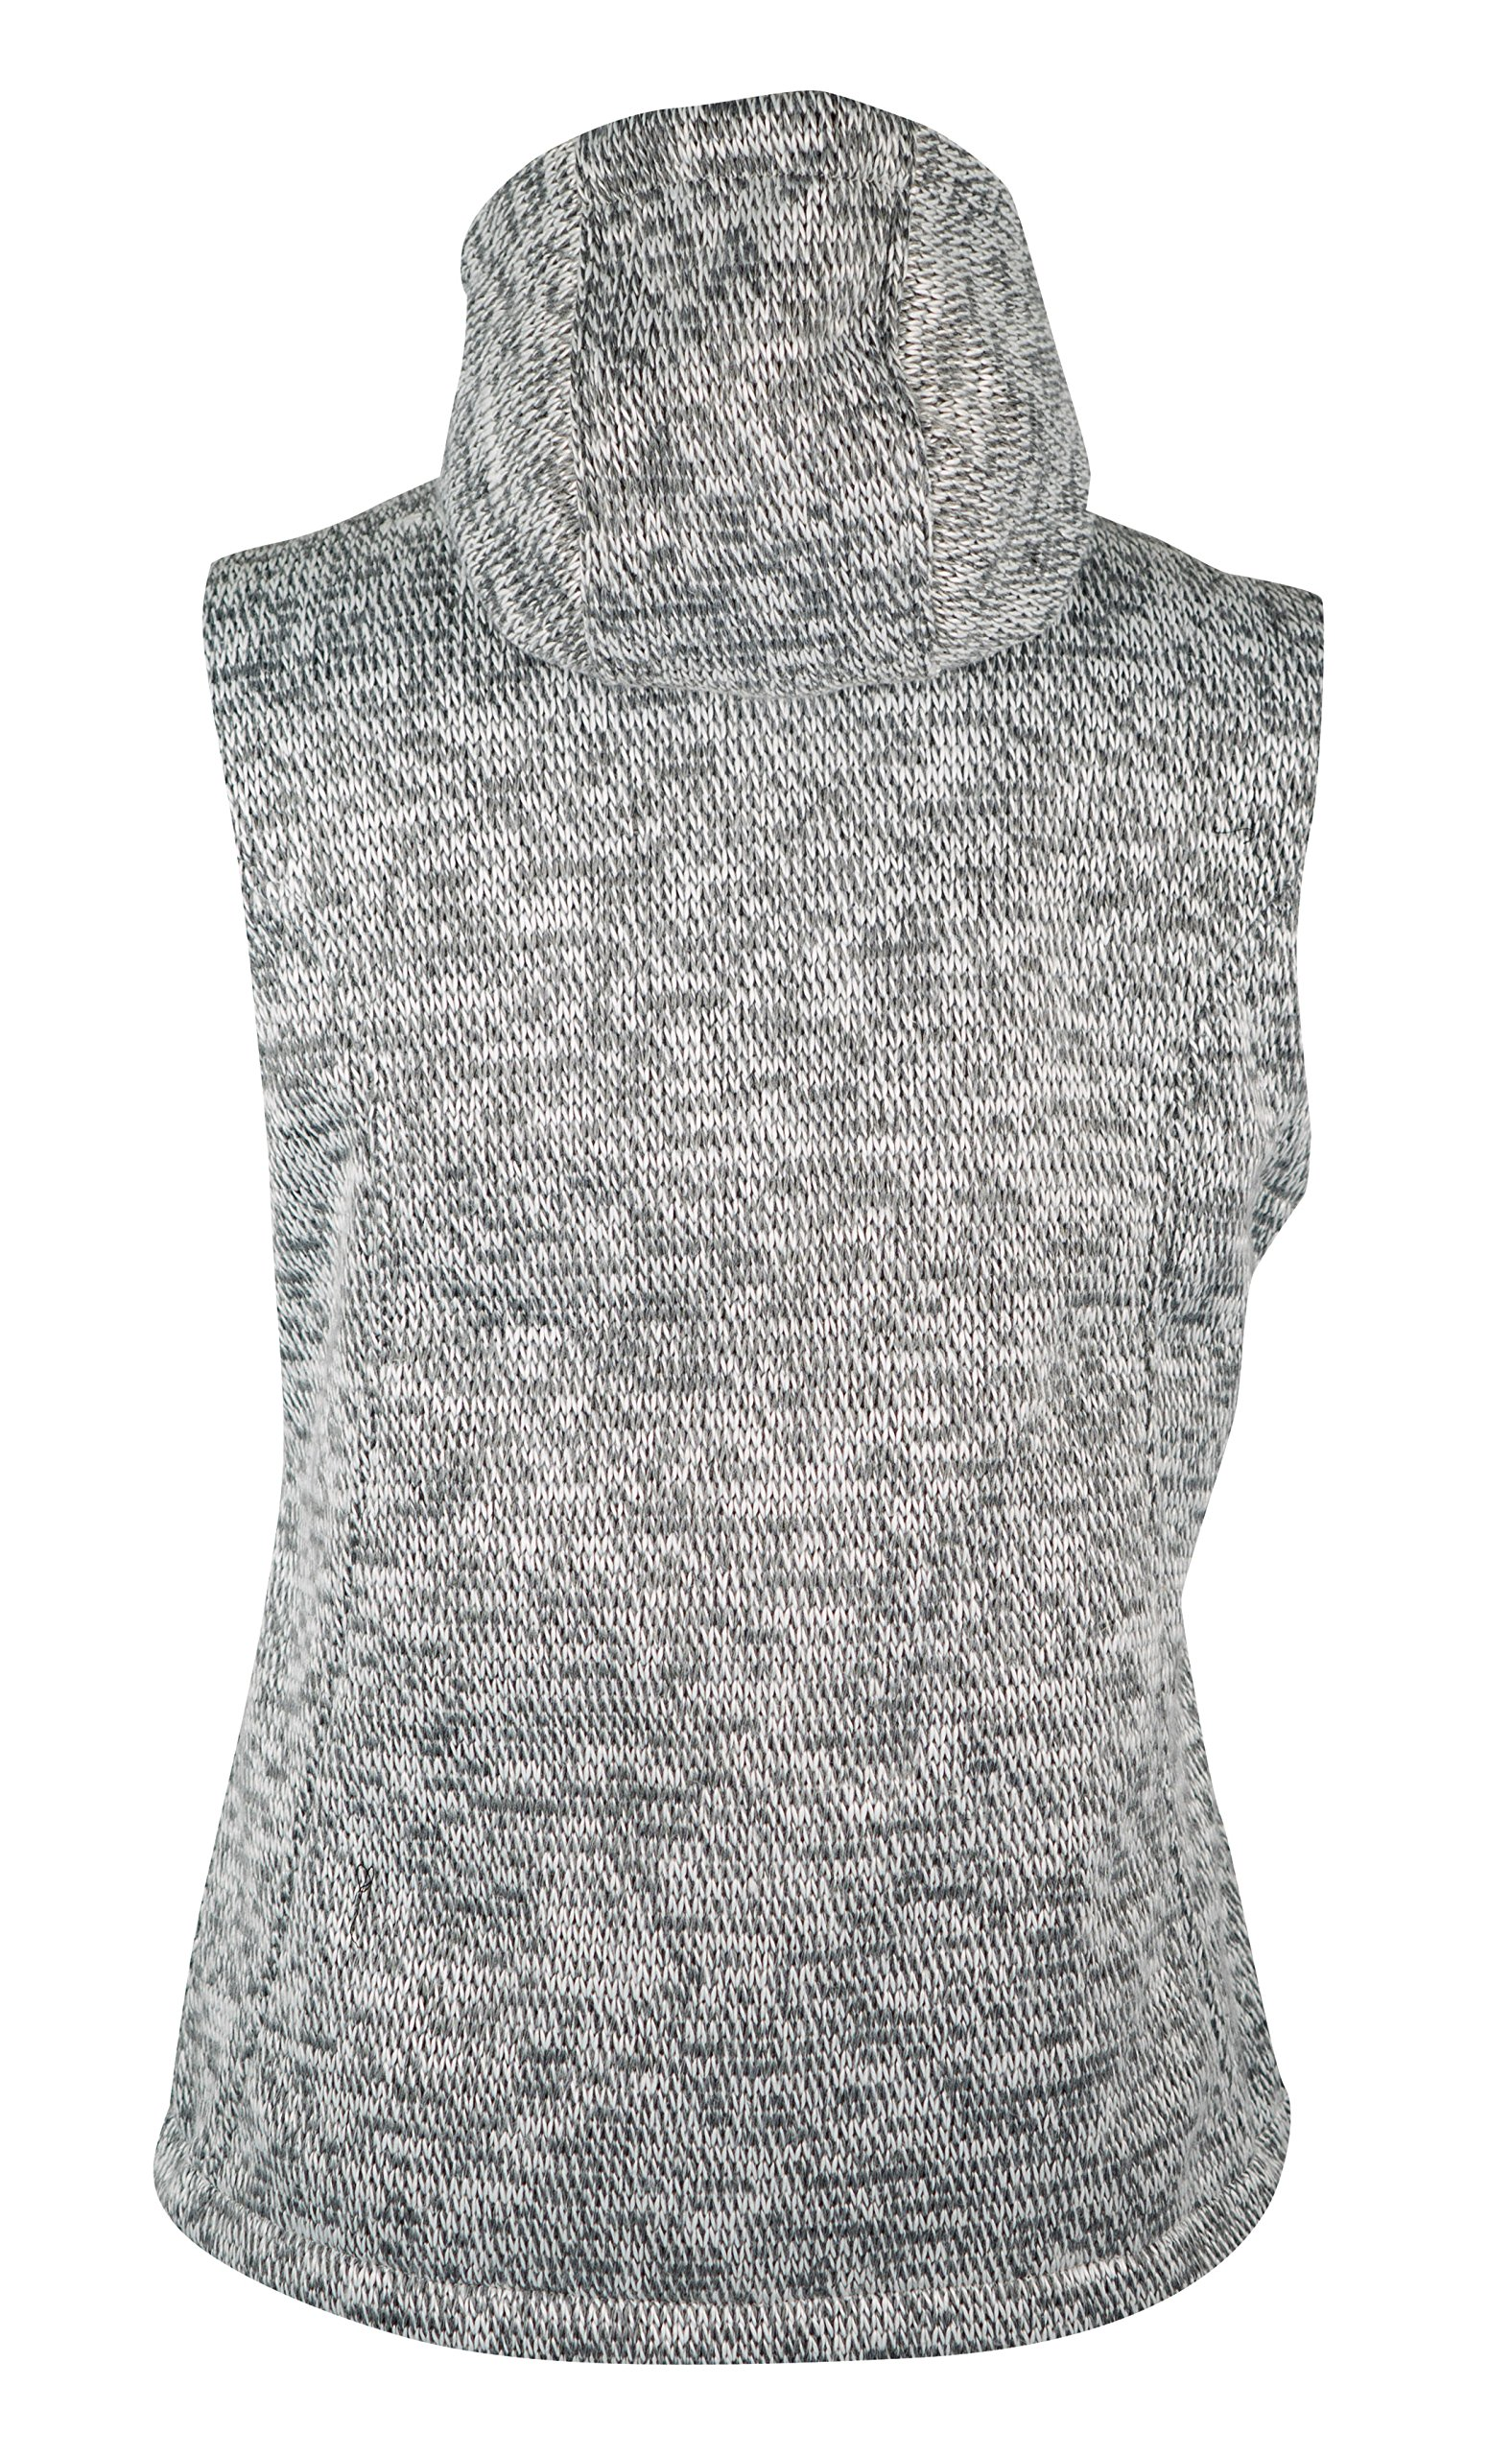 910gvHJIB%2BL - Deproc Women's WHITEFORD, Sweat Vest